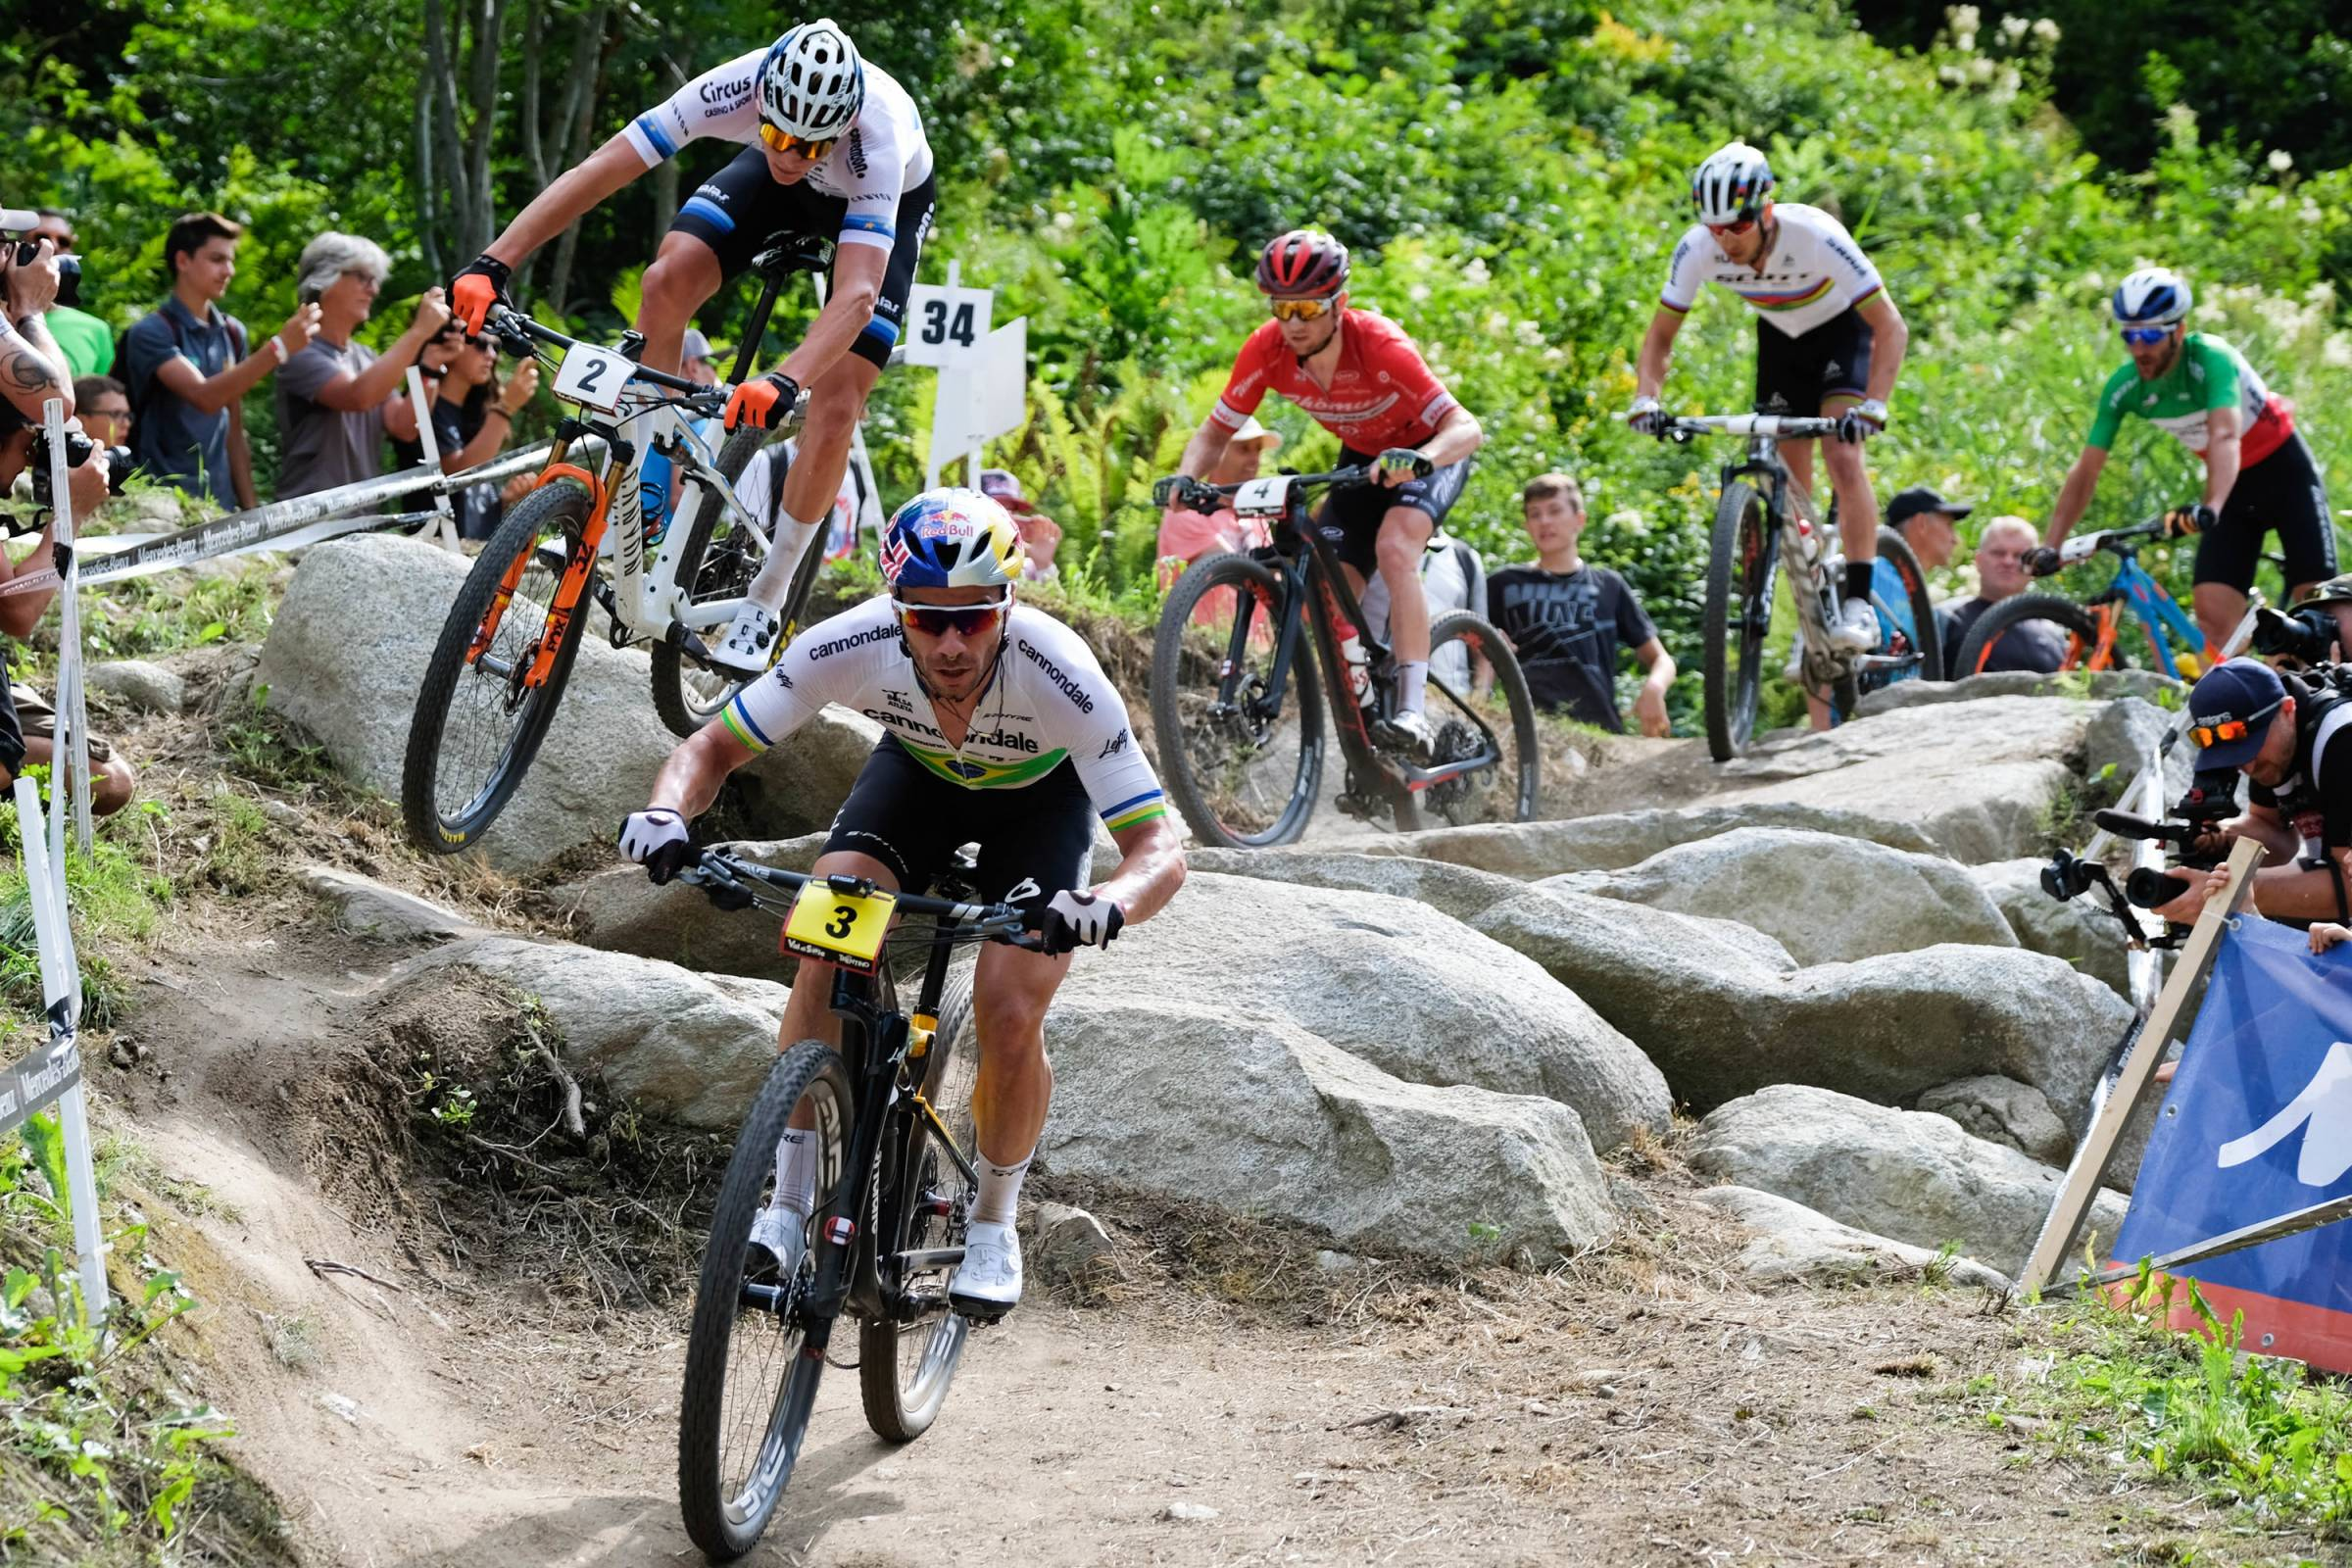 several mountain bike athletes racing down rocky course at a UCI World Cup